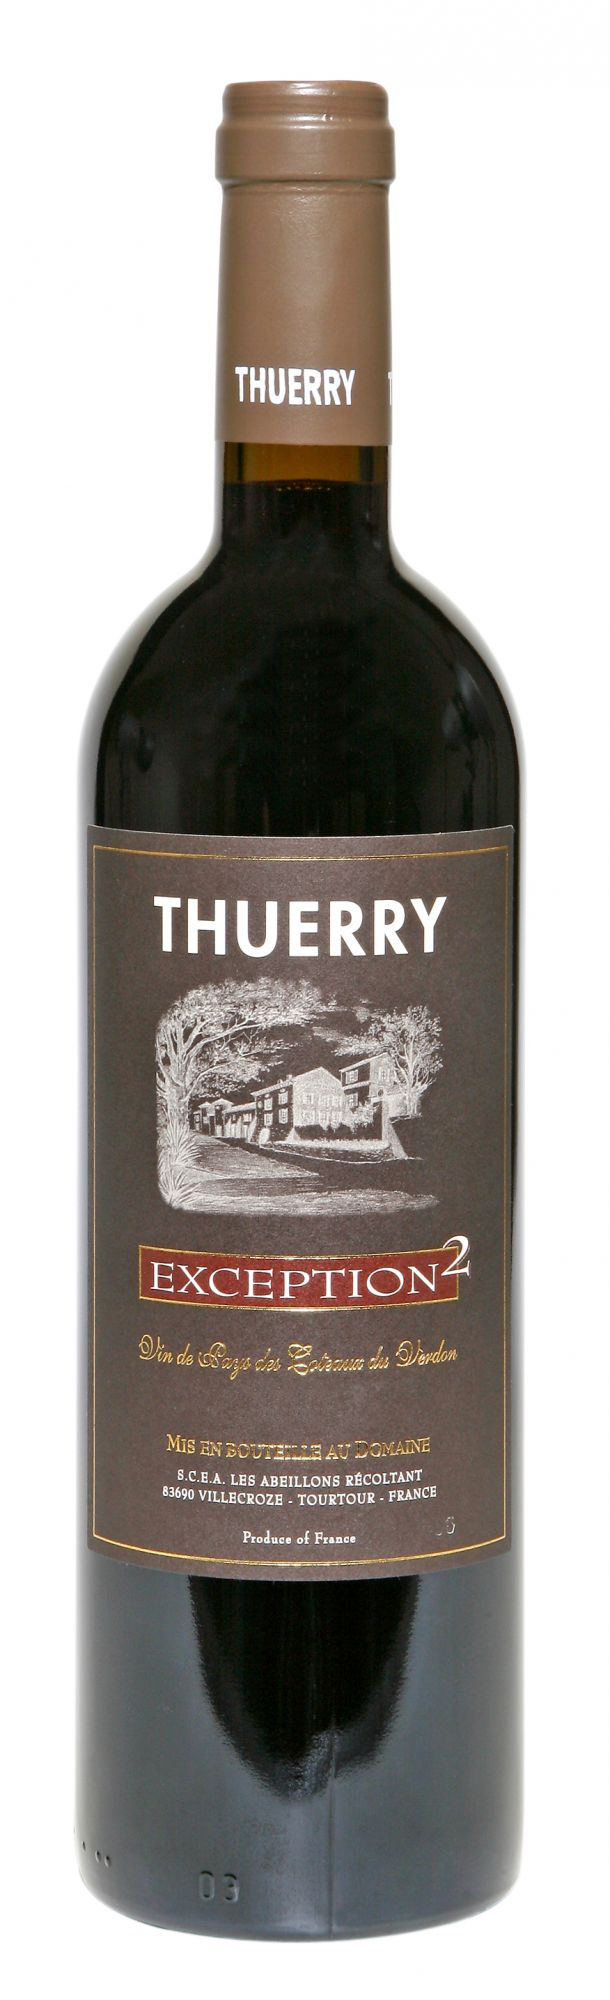 Château Thuerry, l'Exception 2 red 1.5 LTR.